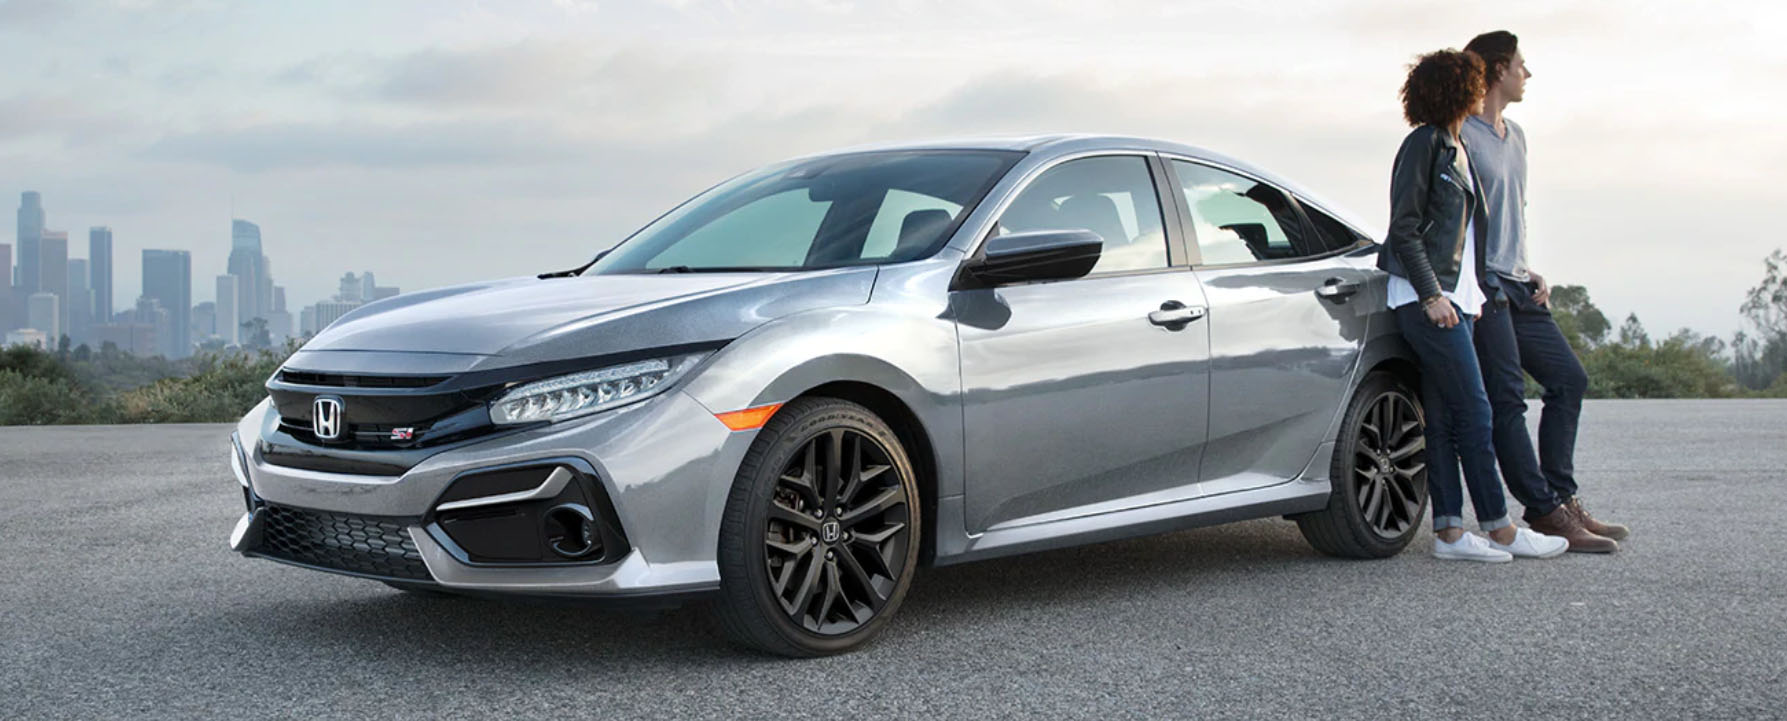 2020 Honda Civic Si Sedan For Sale in Garden City